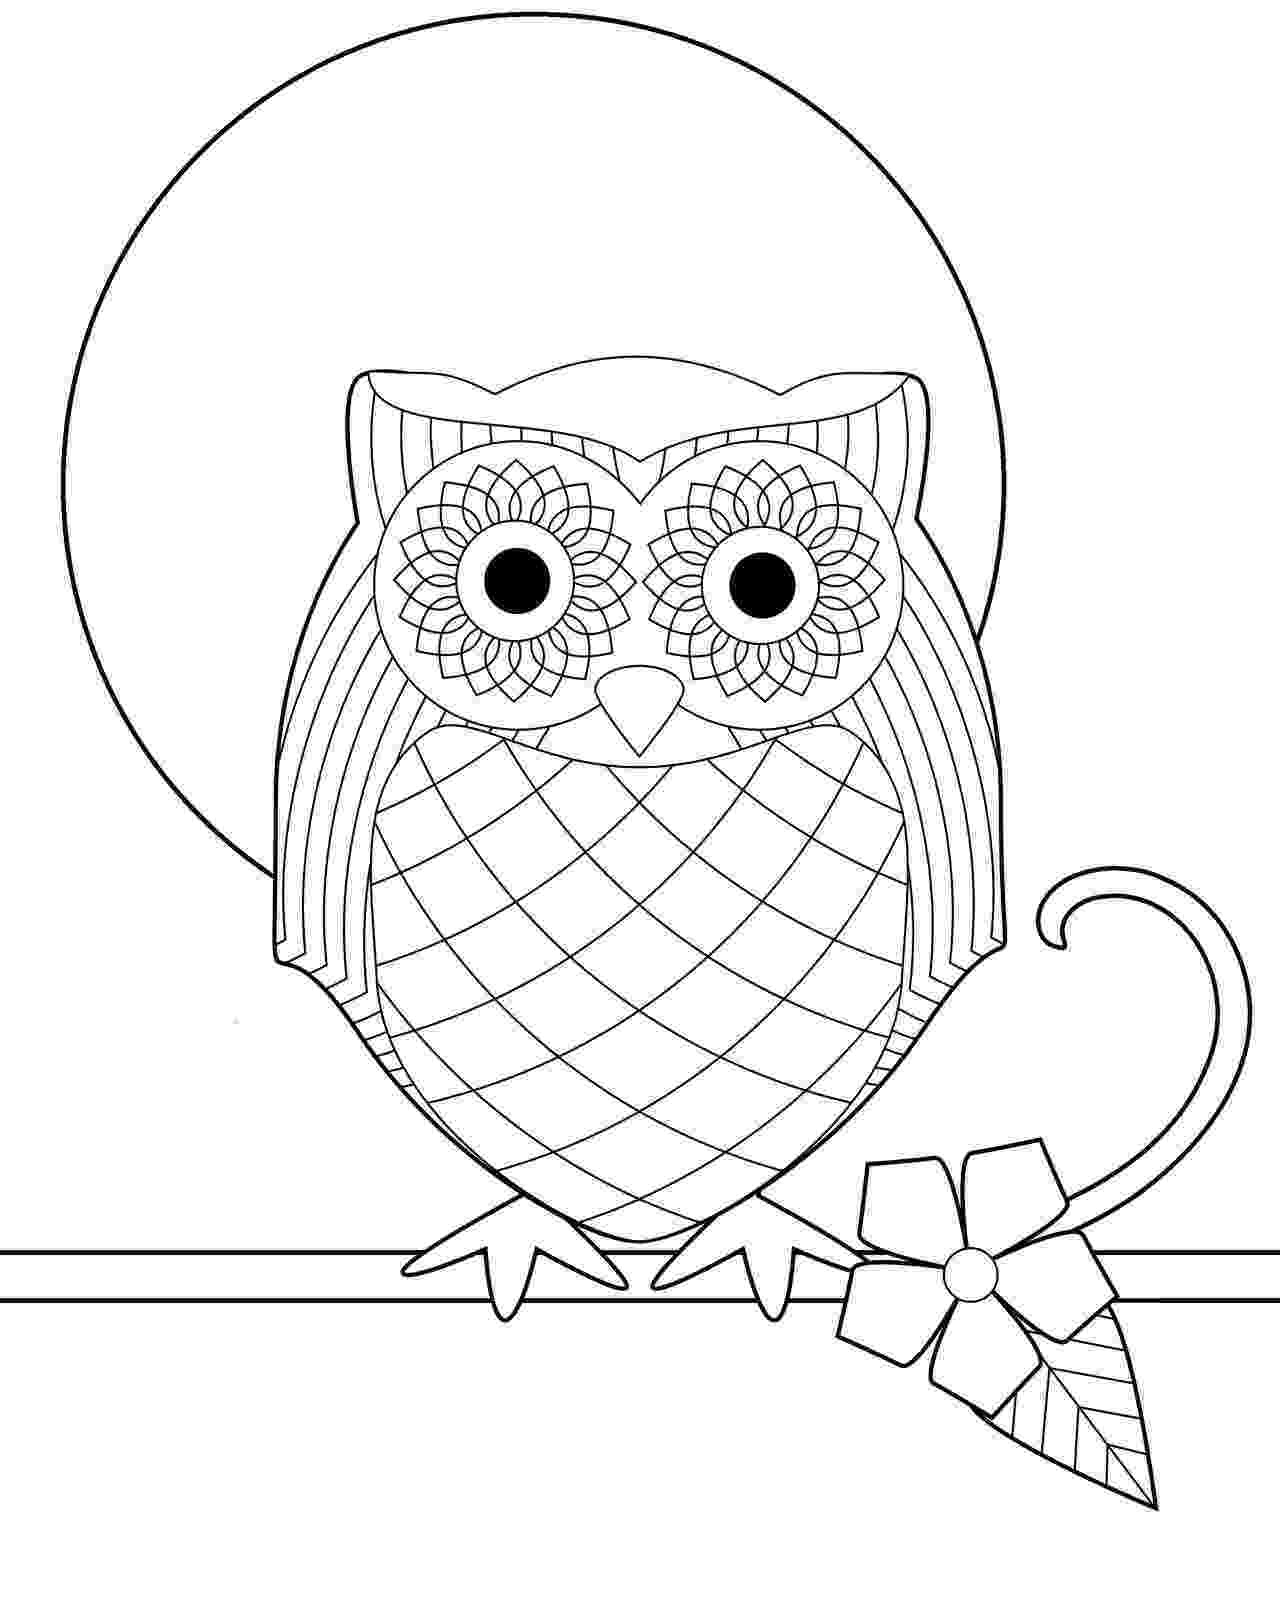 cute coloring pages of owls owl dreamcatcher owls adult coloring pages owls coloring cute pages of